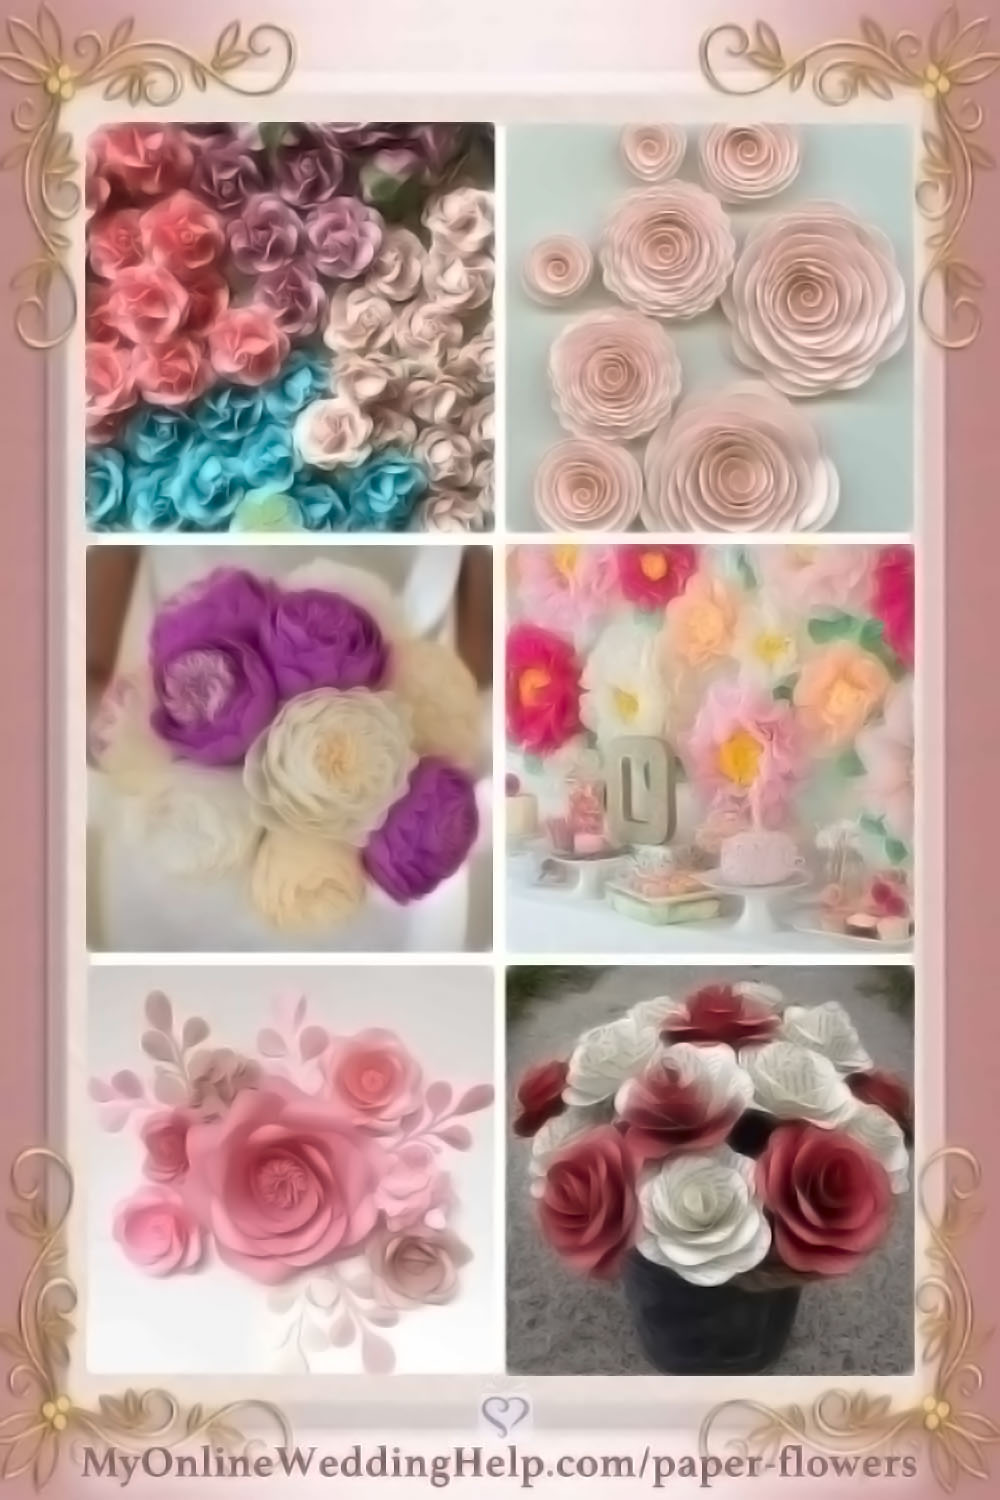 Paper flowers can add permanent (and affordable) beauty to decor. These are some examples of different types. Little roses, spiral style, paper peonies, huge tissue paper flowers, as an artistic backdrop, and book pages roses. There are links to buy each of these on the page (Scroll down to More Paper Flower Designs).